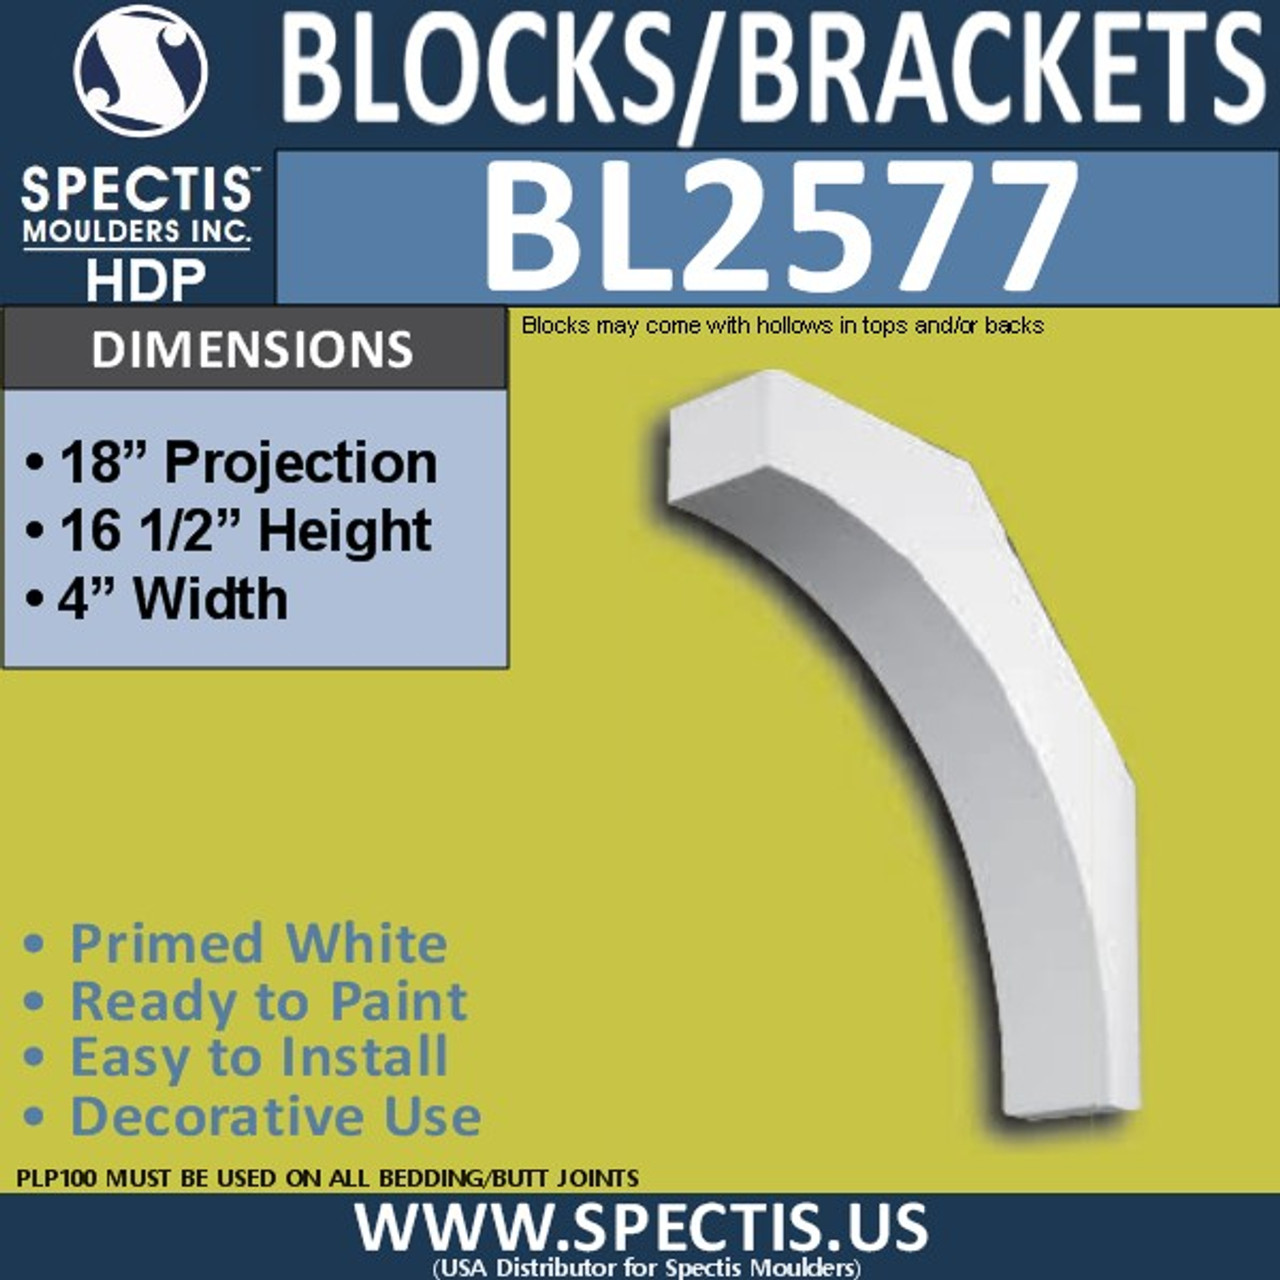 "BL2577 Eave Block or Bracket 4""W x 16.5""H x 18"" P"